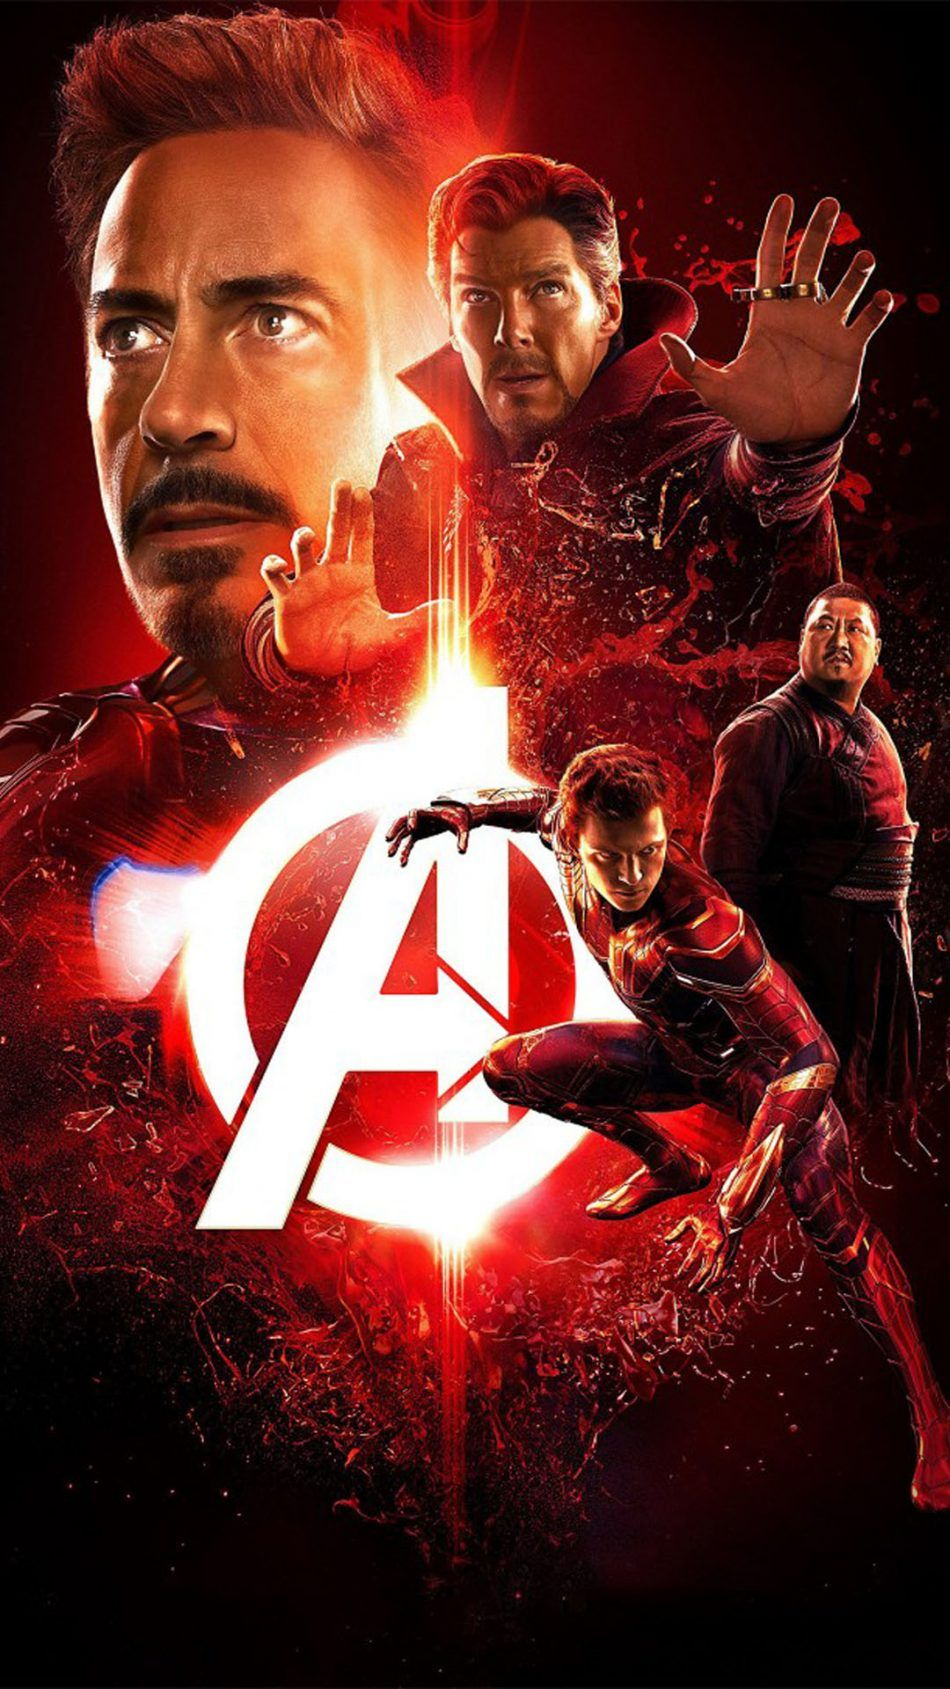 Avengers Infinity War Poster Wallpapers - Top Free Avengers